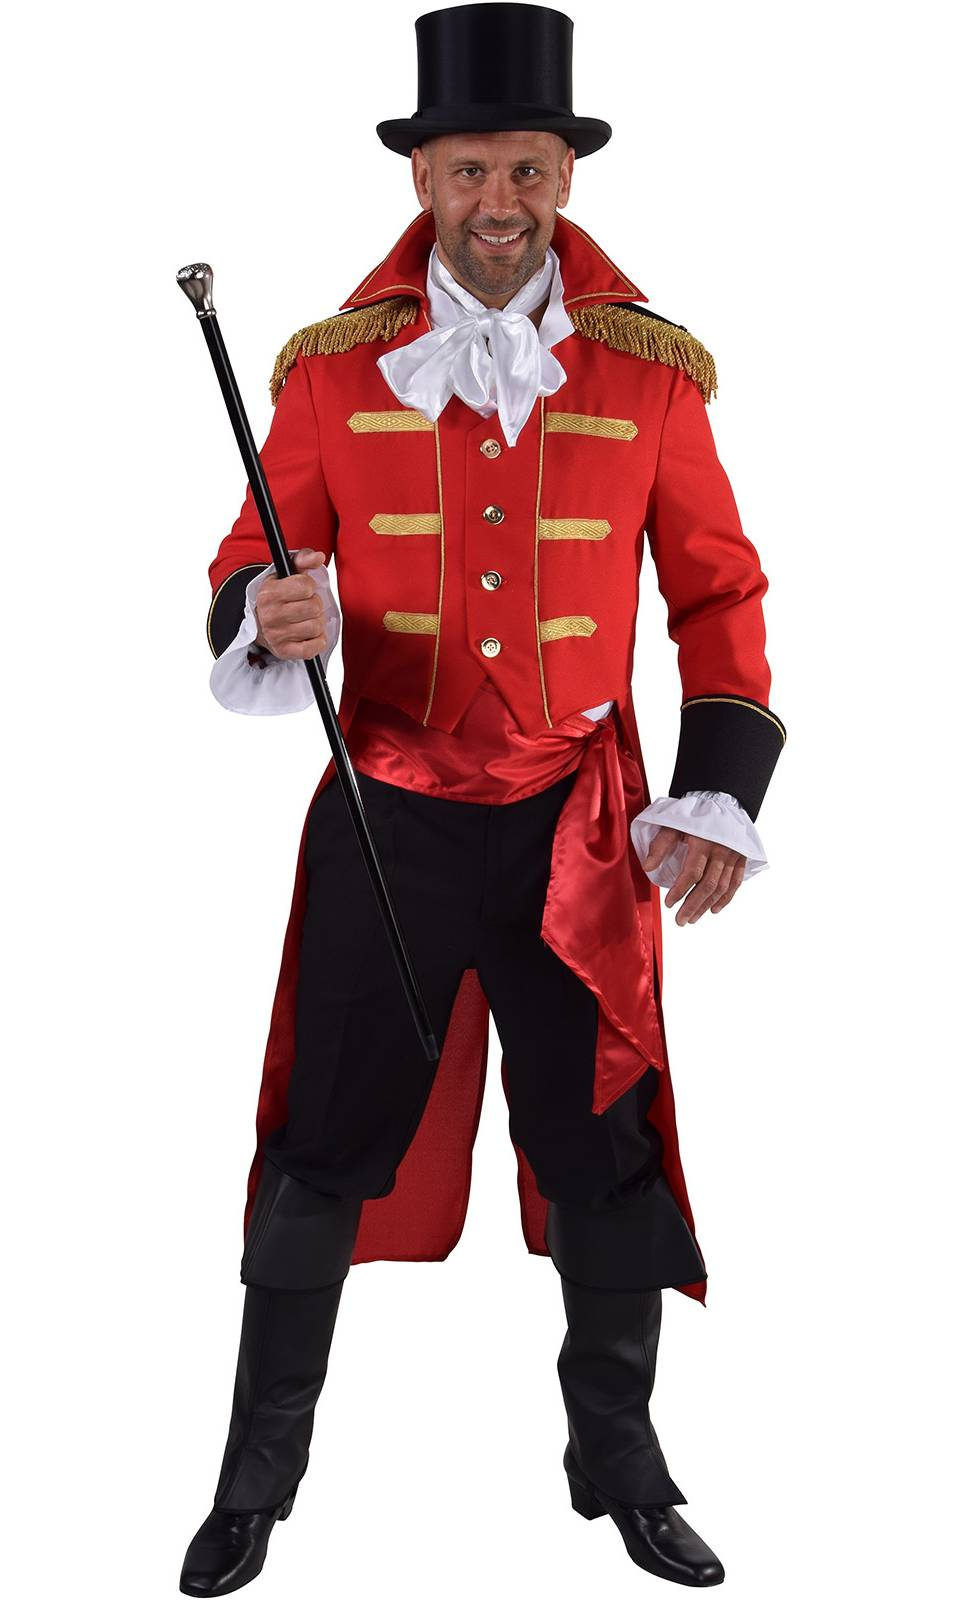 Costume-Monsieur-Loyal-Homme-grande-Taille-XL-XXL